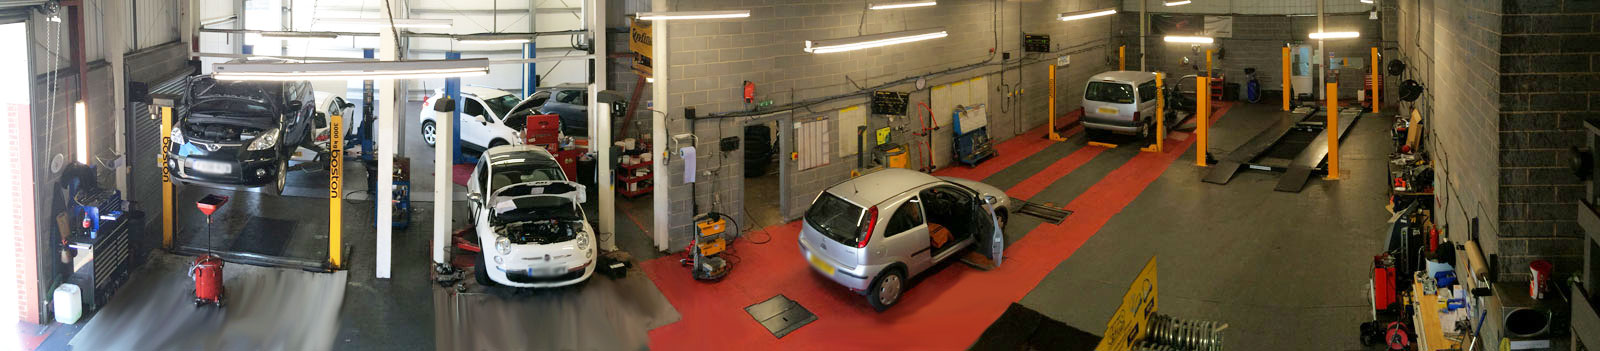 Ja's Auto Services, the Garage